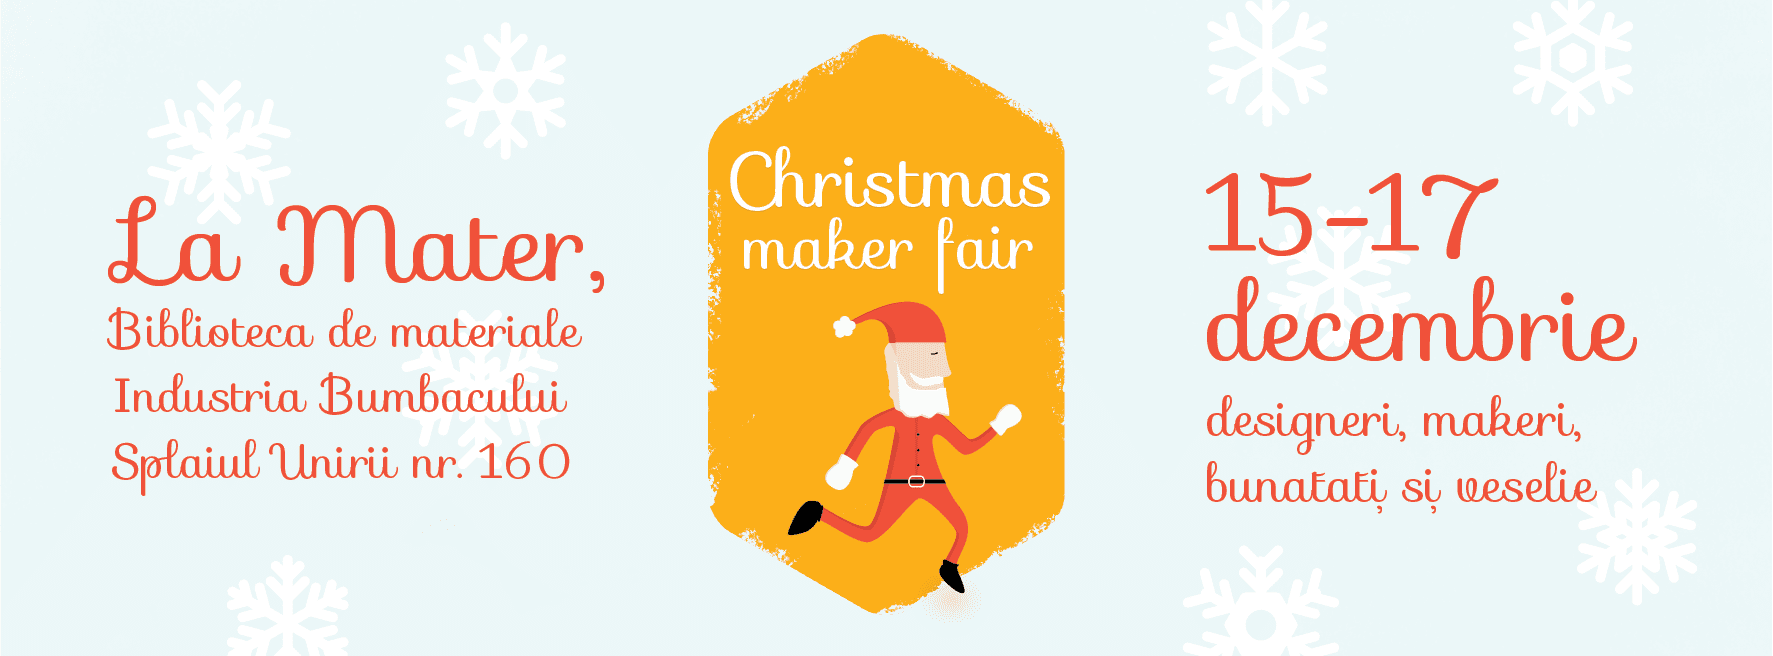 christmas maker fair mater